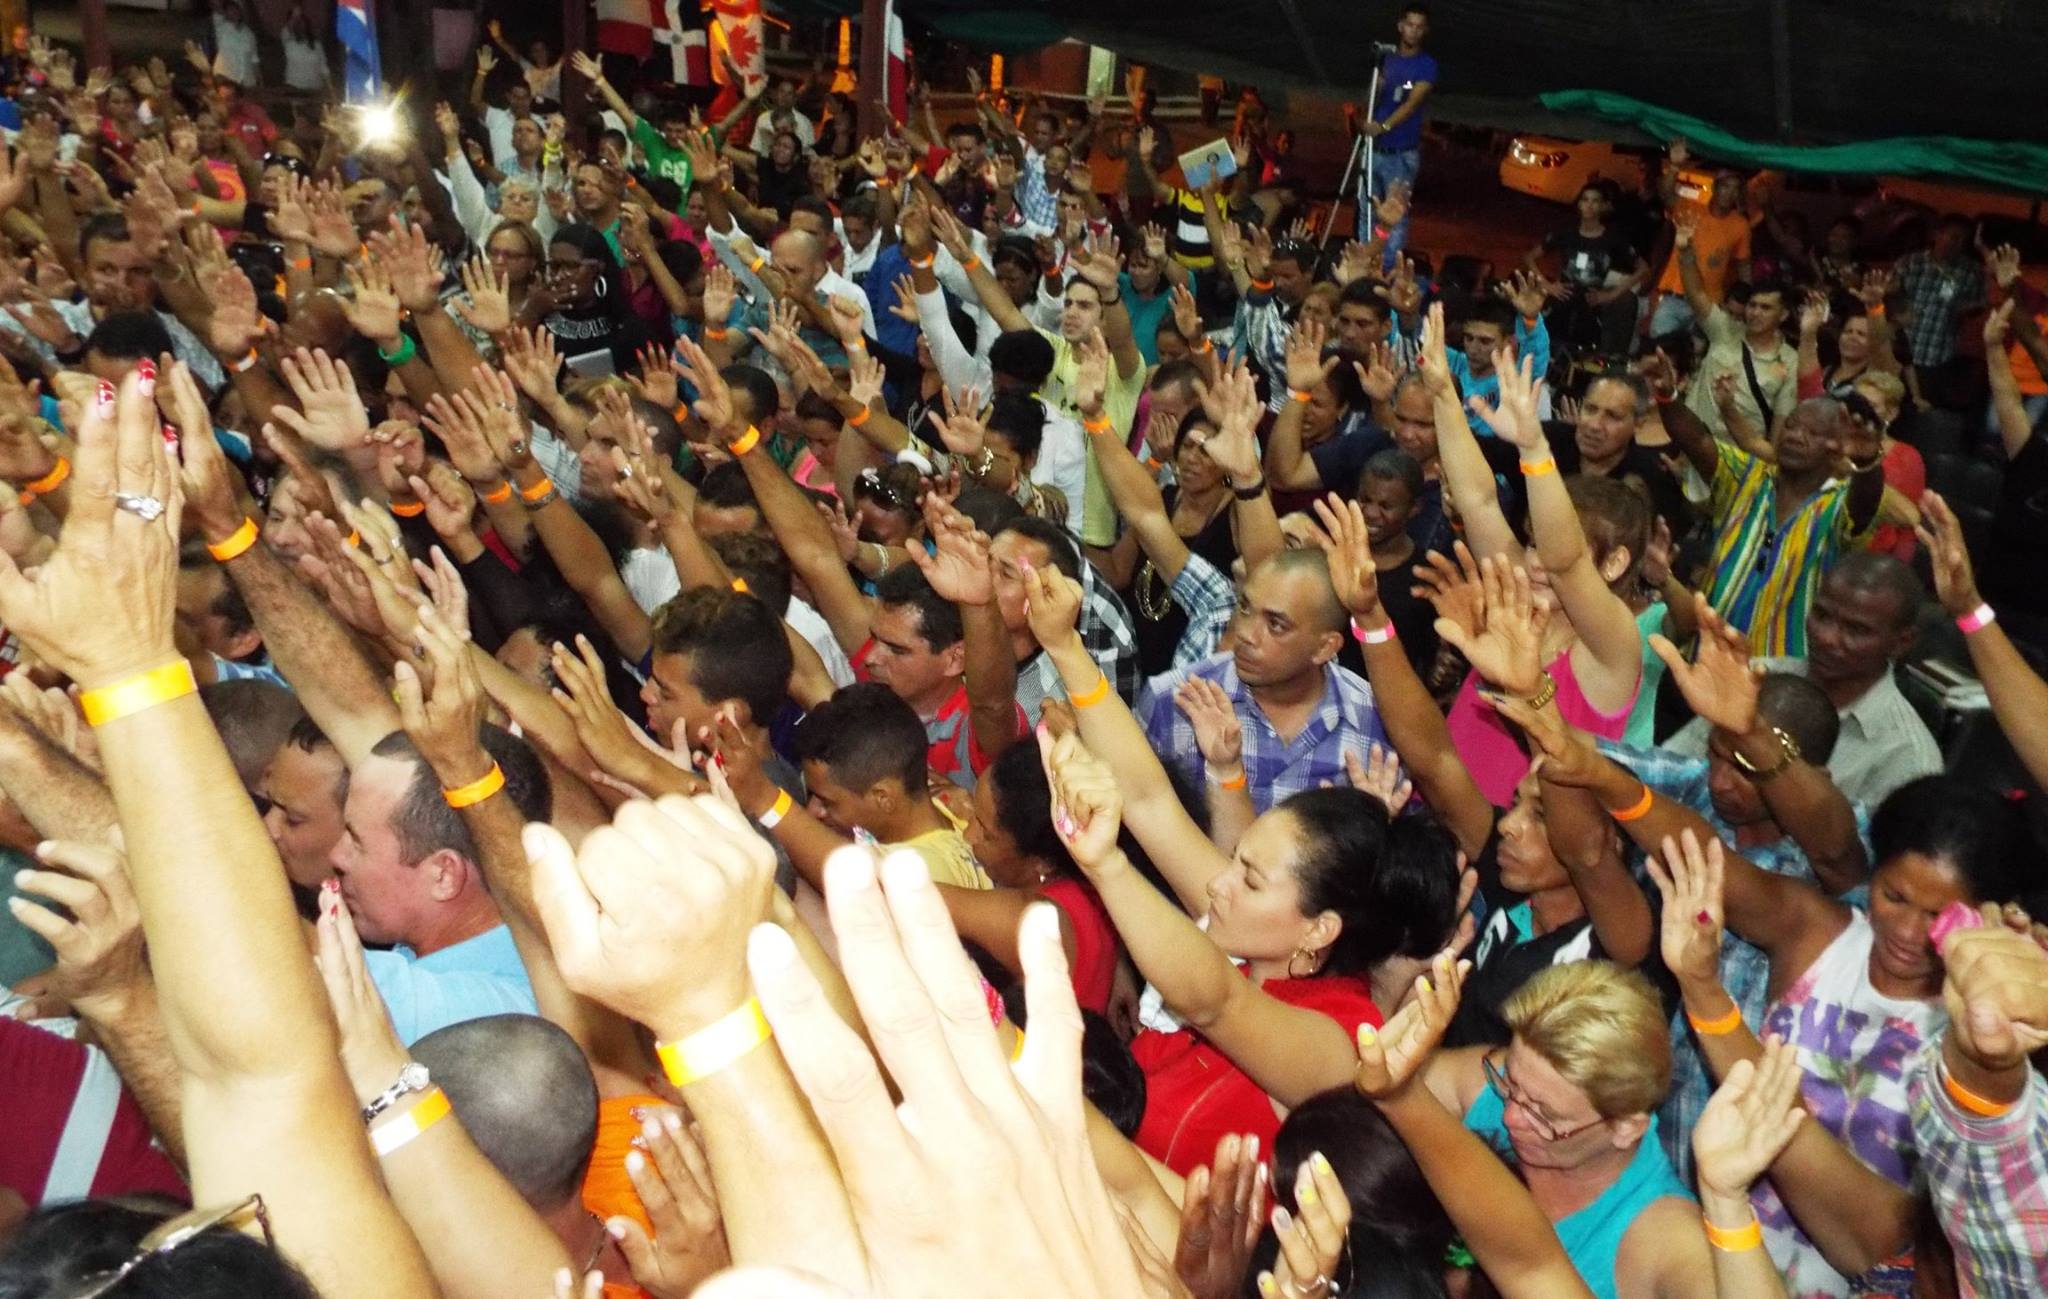 Crowd in central square in Santiago de Cuba at meeting addressed by Marilin after demolition 2016